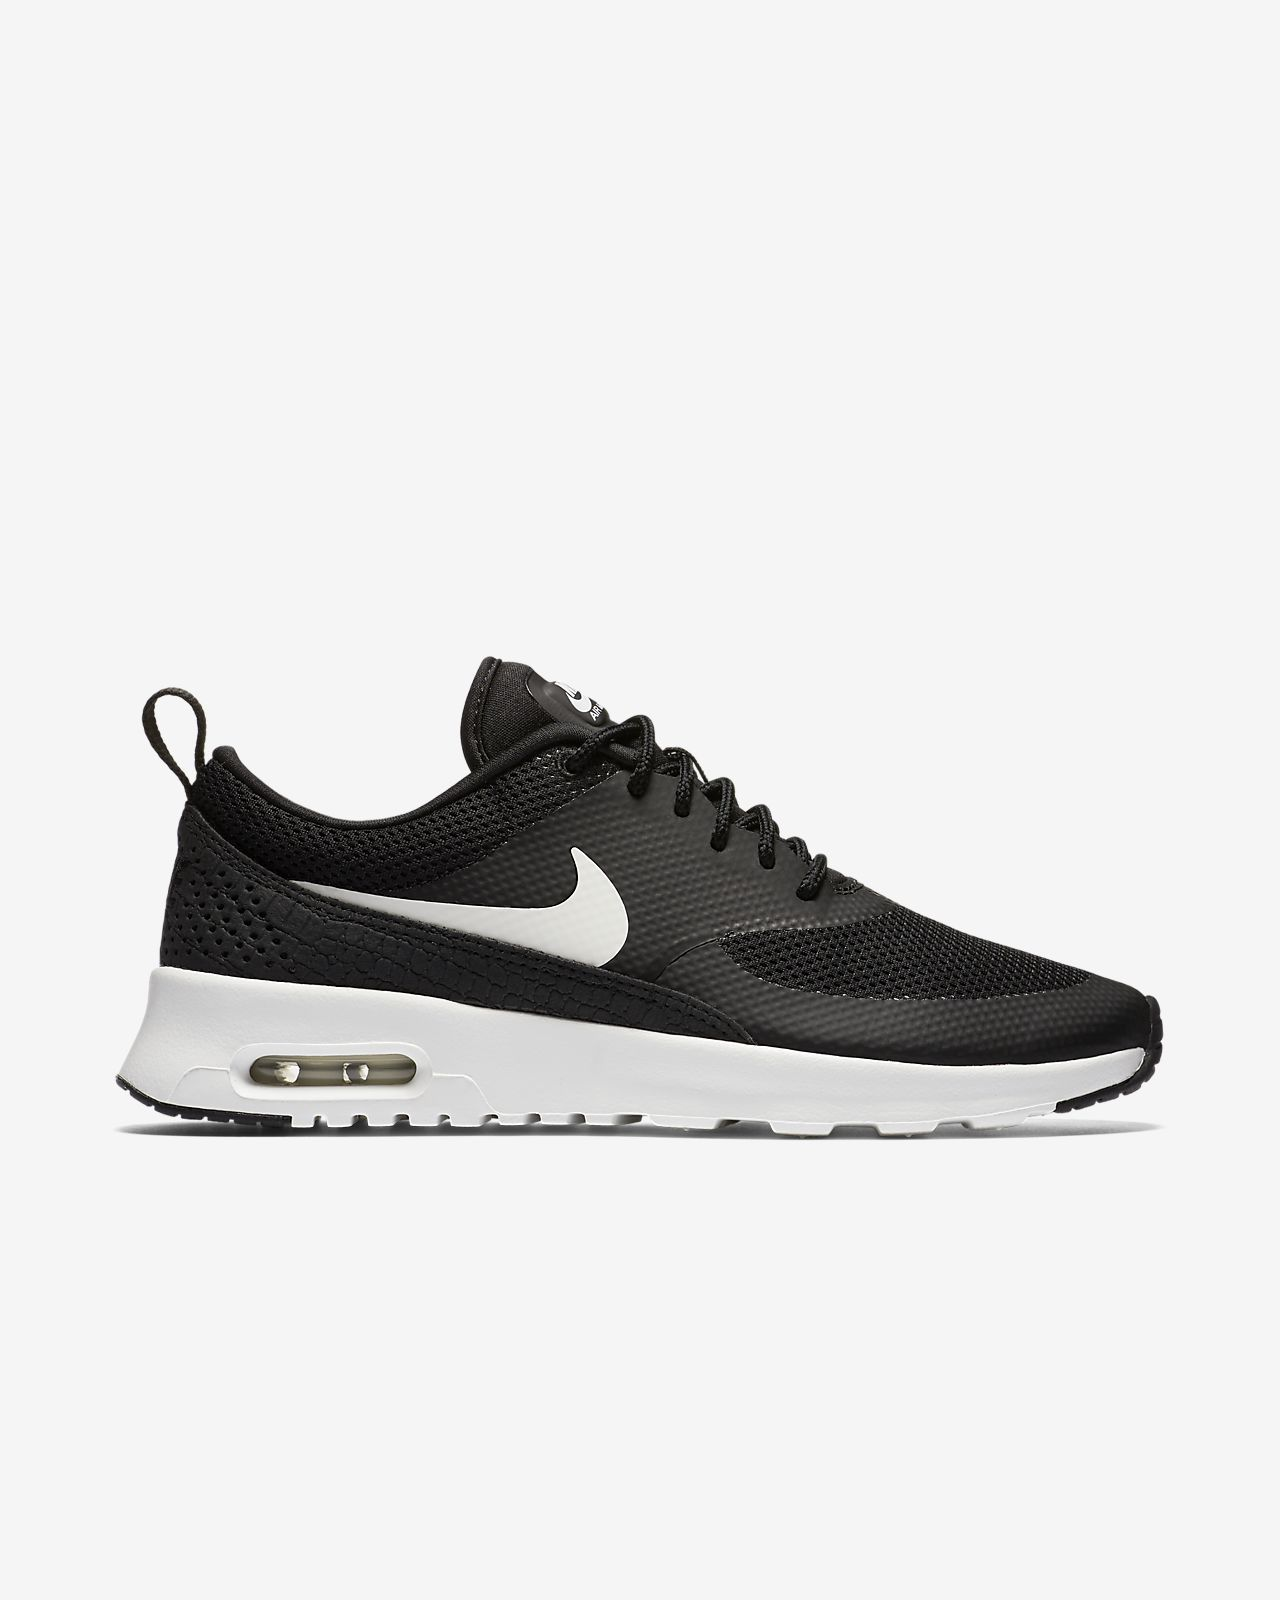 Nike Air Max Thea Women's Shoe in 2019 | Nike air max for